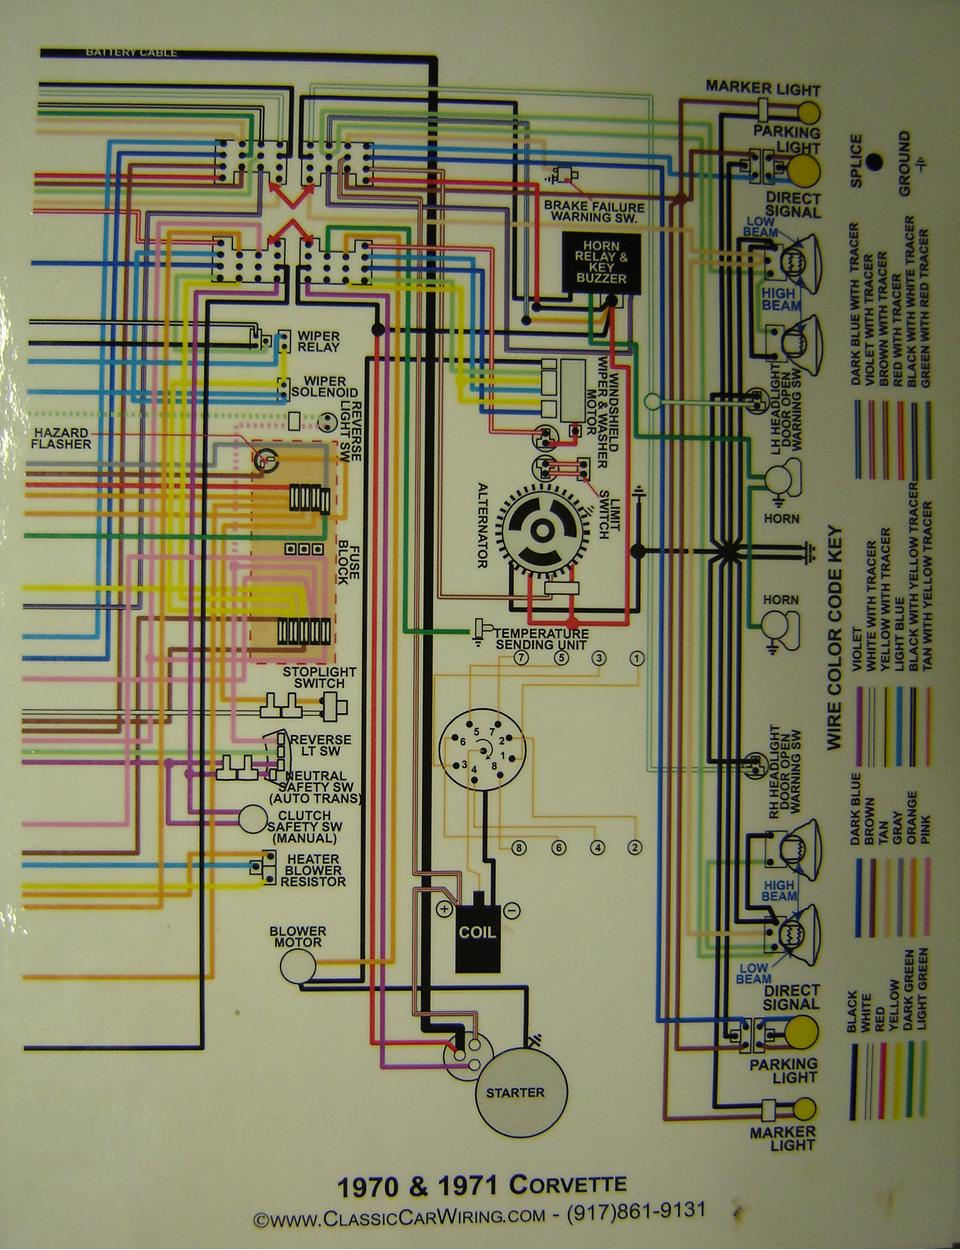 1970 71 corvette color wiring diagram B chevy diagrams 1989 corvette engine wiring harness at alyssarenee.co